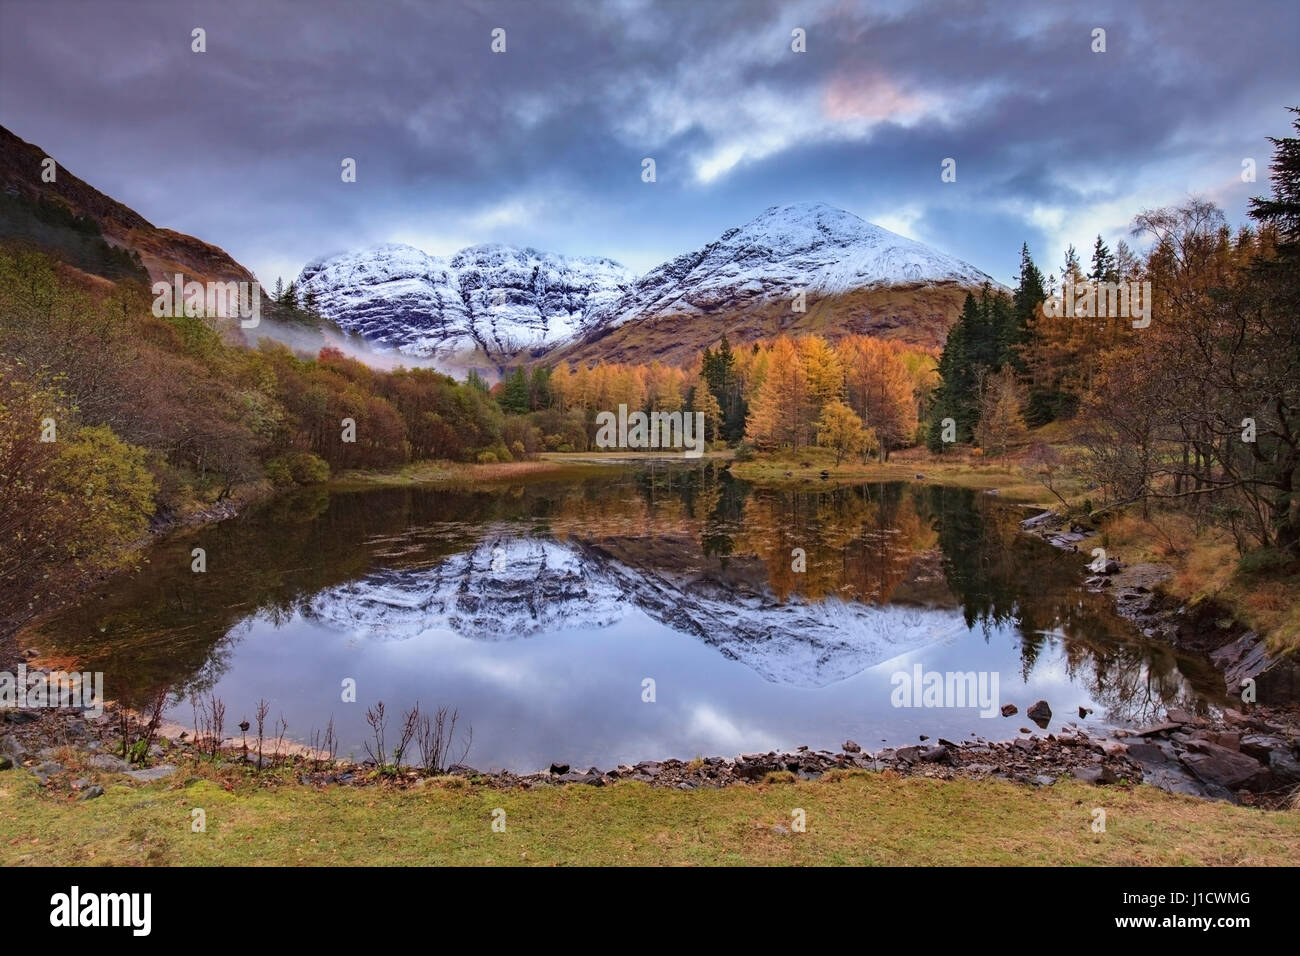 Sunrise at a small lochan in the Pass of Glen Coe with the Three Sisters of Glencoe in the distance. - Stock Image